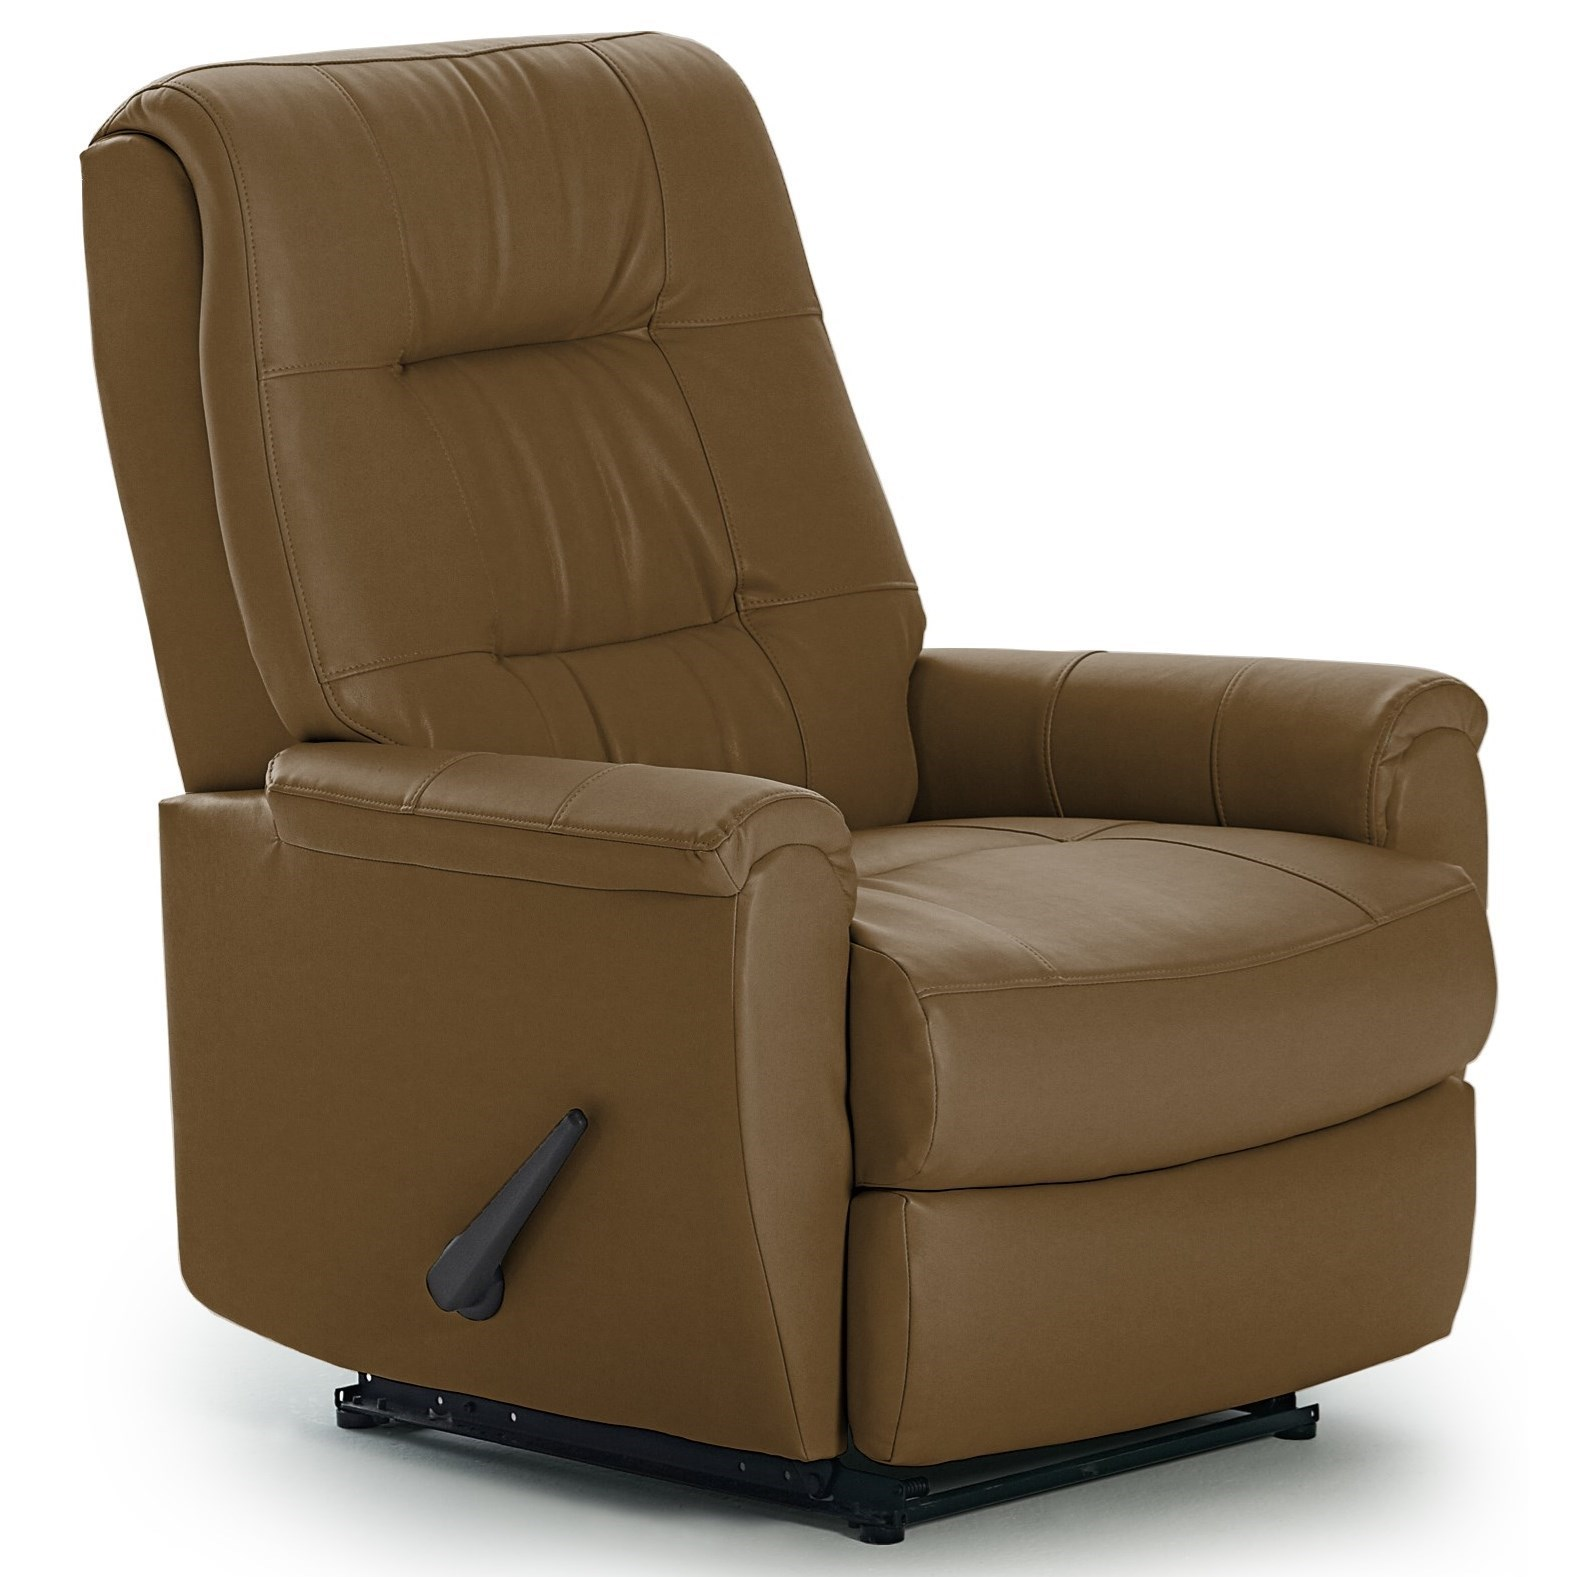 Best Home Furnishings Recliners - Petite Rocker Recliner - Item Number: -2083364182-25276